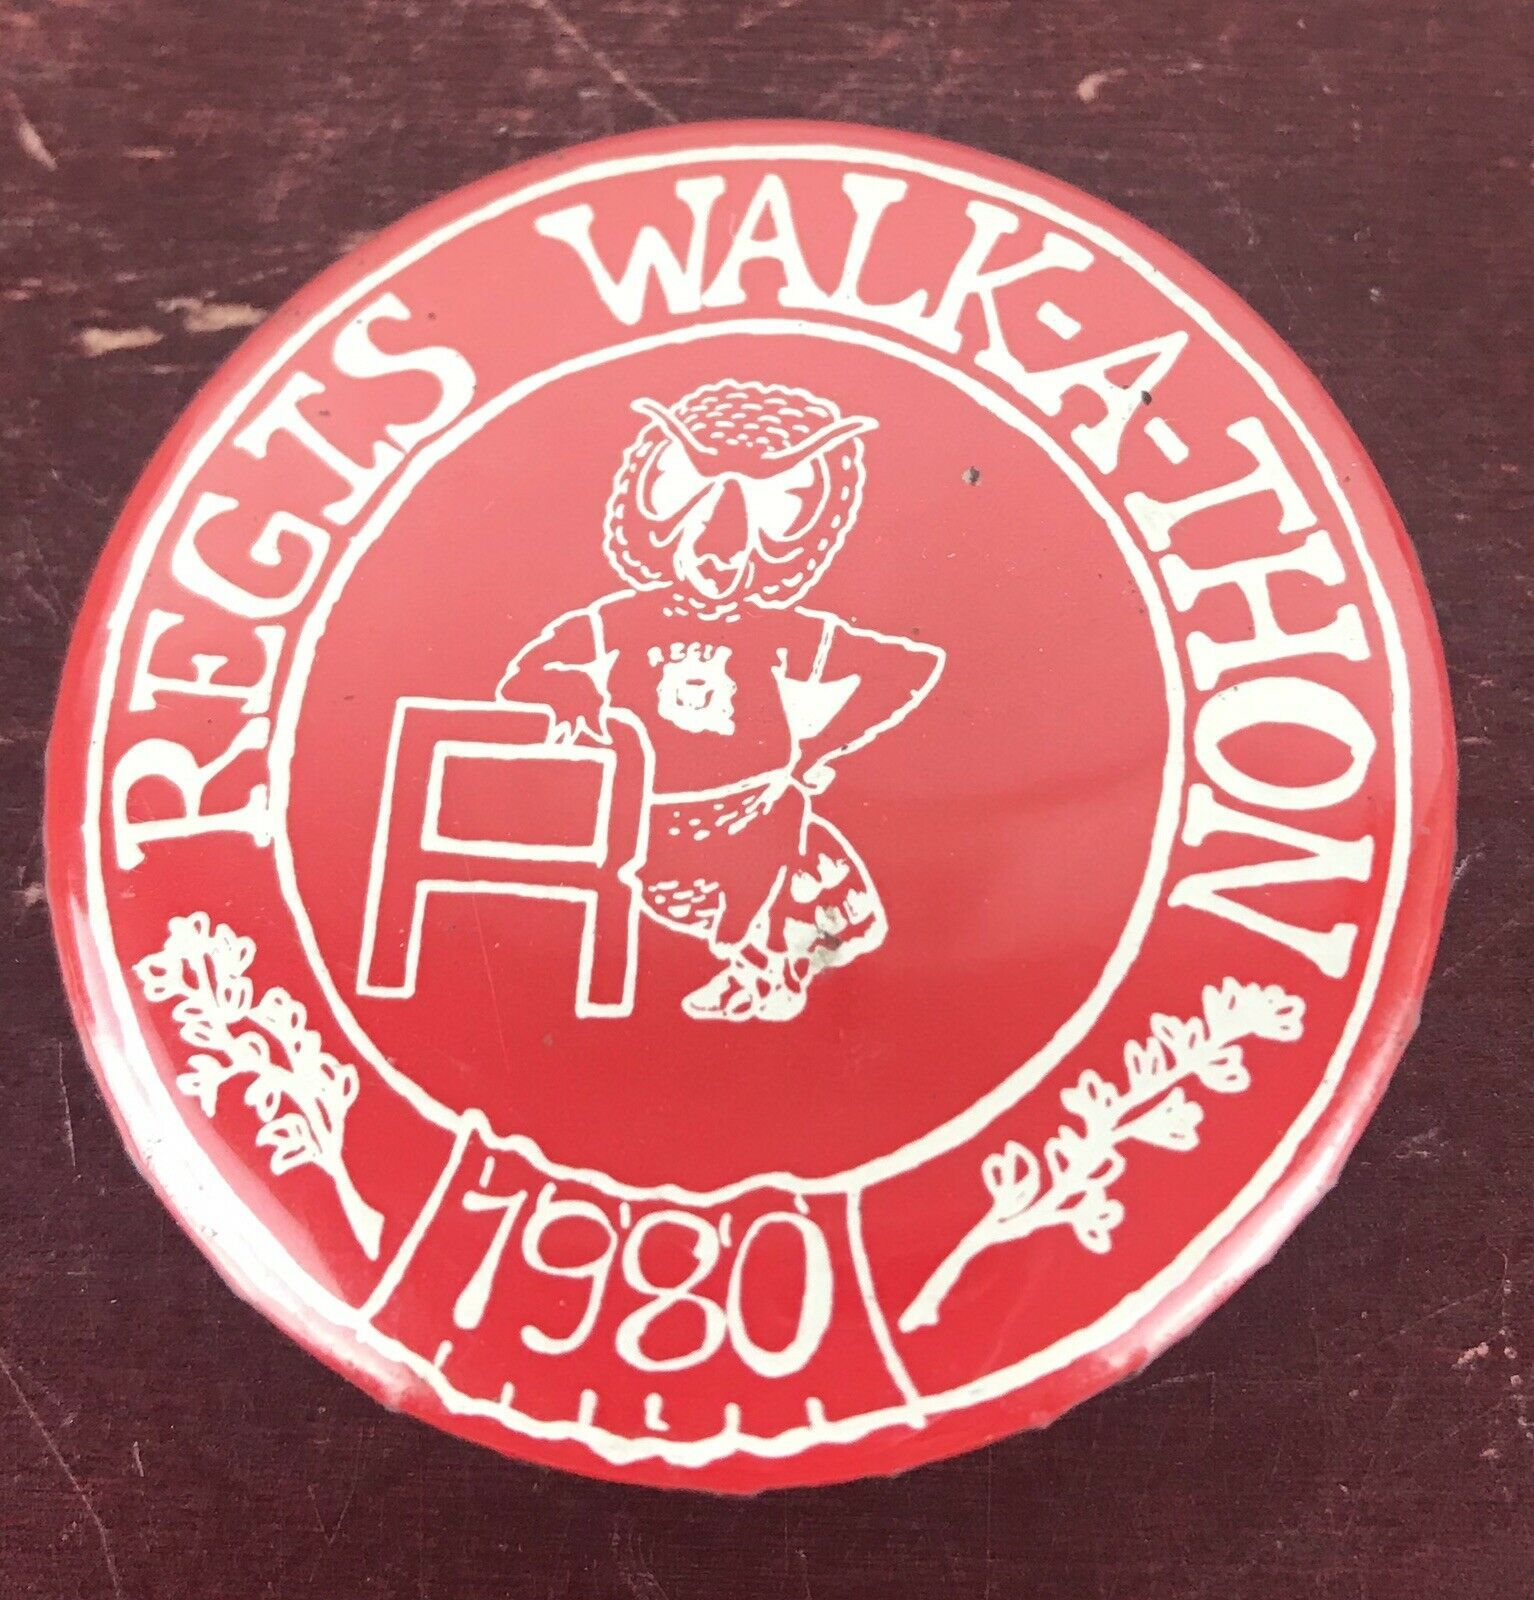 Primary image for Regis Walk-A-Thon 1980 Pin